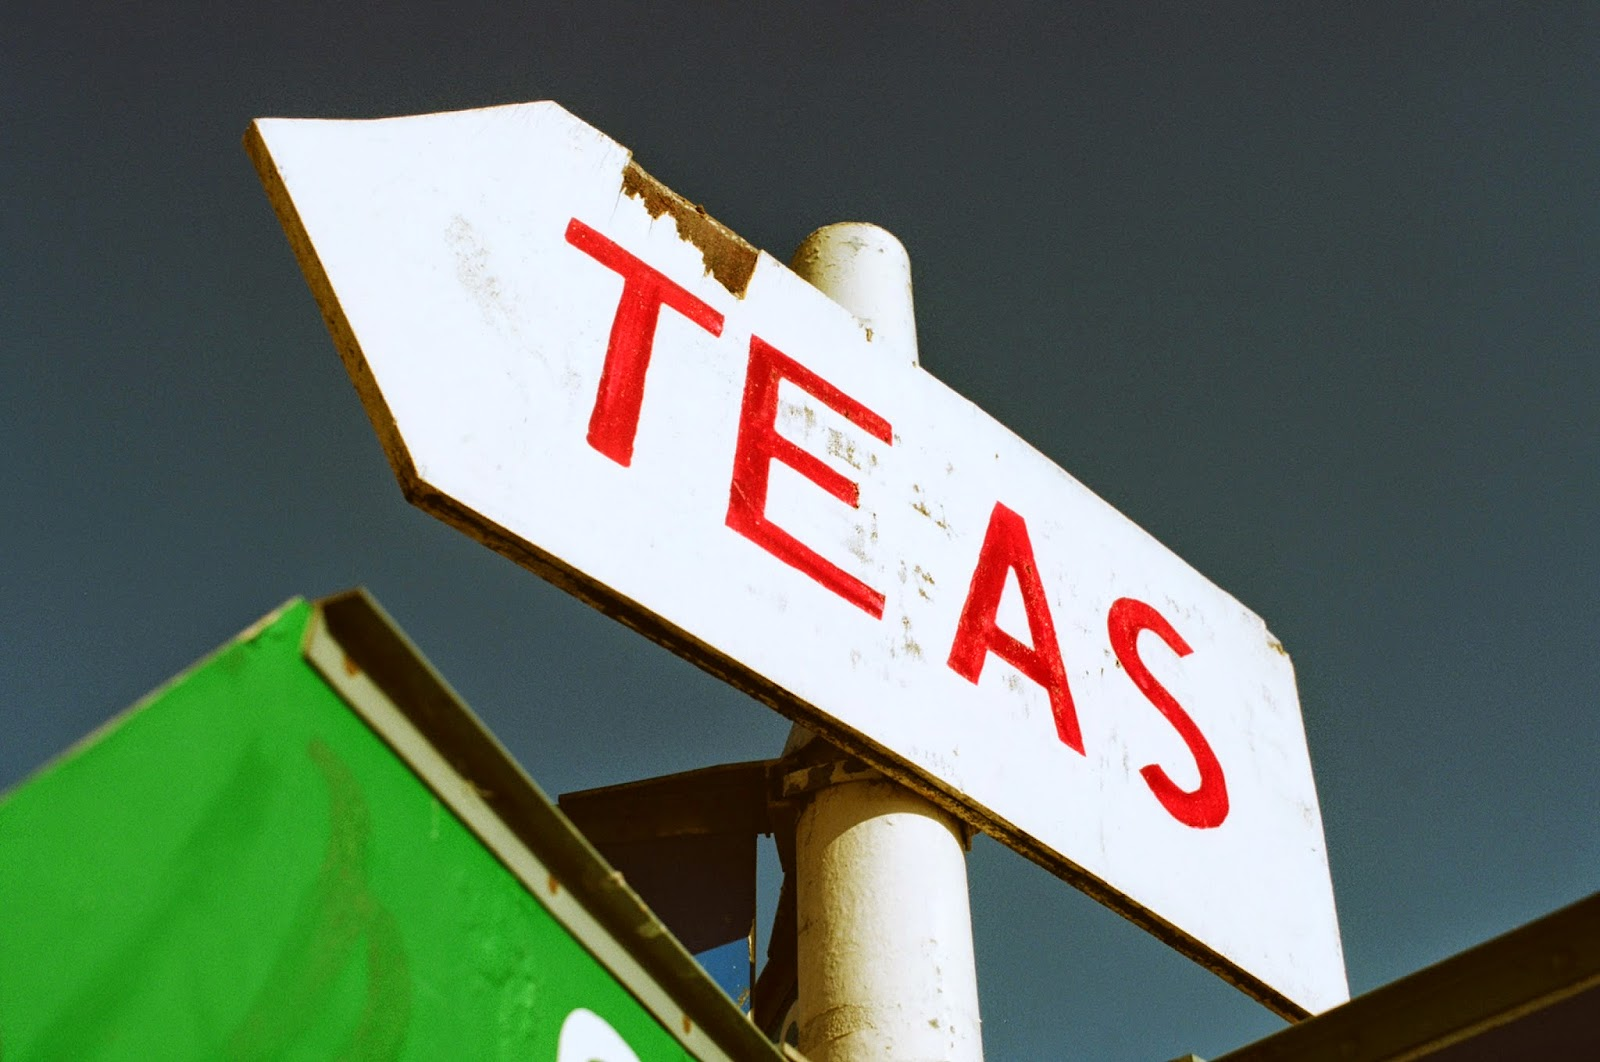 Teas, Broadstairs, Visual Athletics Club, South Thanet, Al Murray, Pub Landlord, Nigel Farage, 2015 General Election